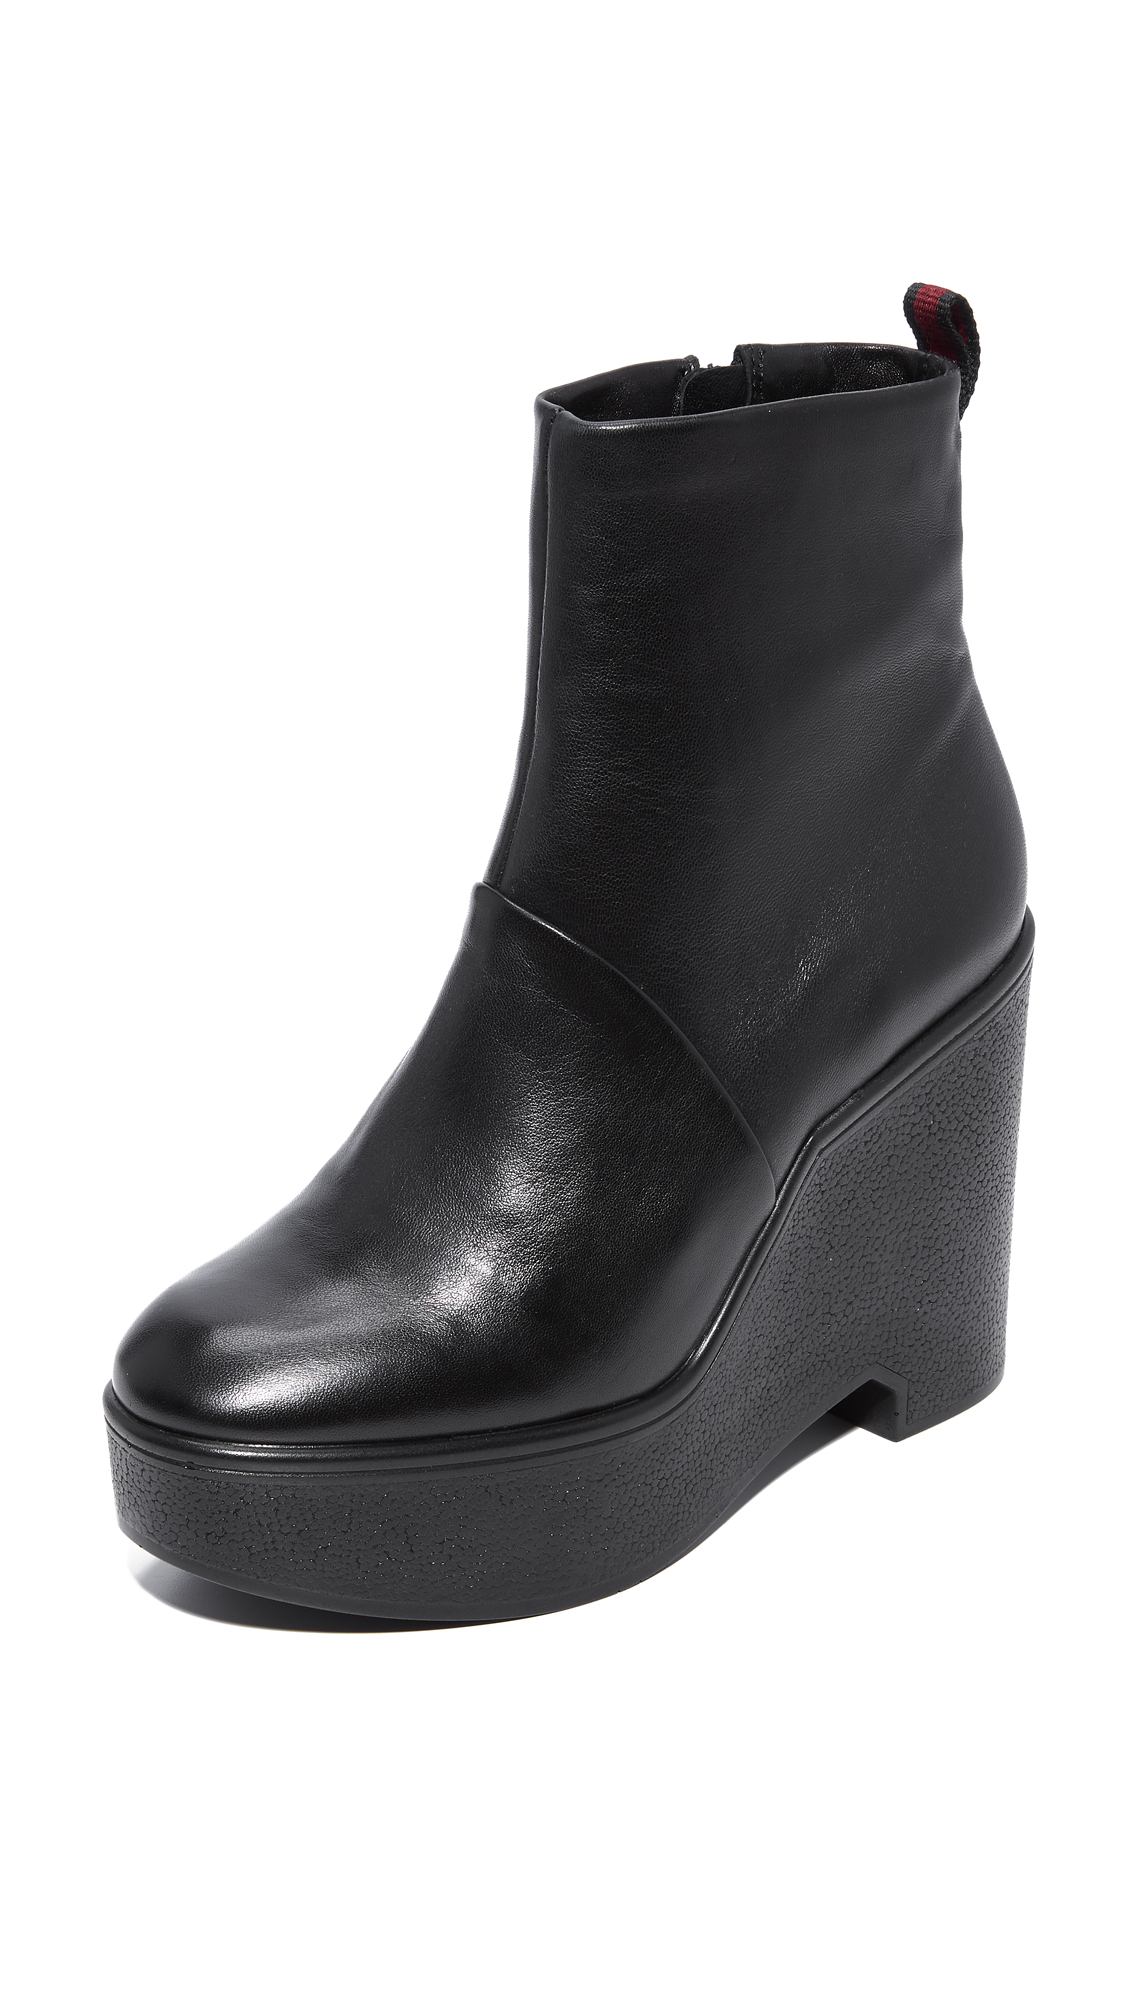 Robert Clergerie Bisouto Block Heel Booties - Black